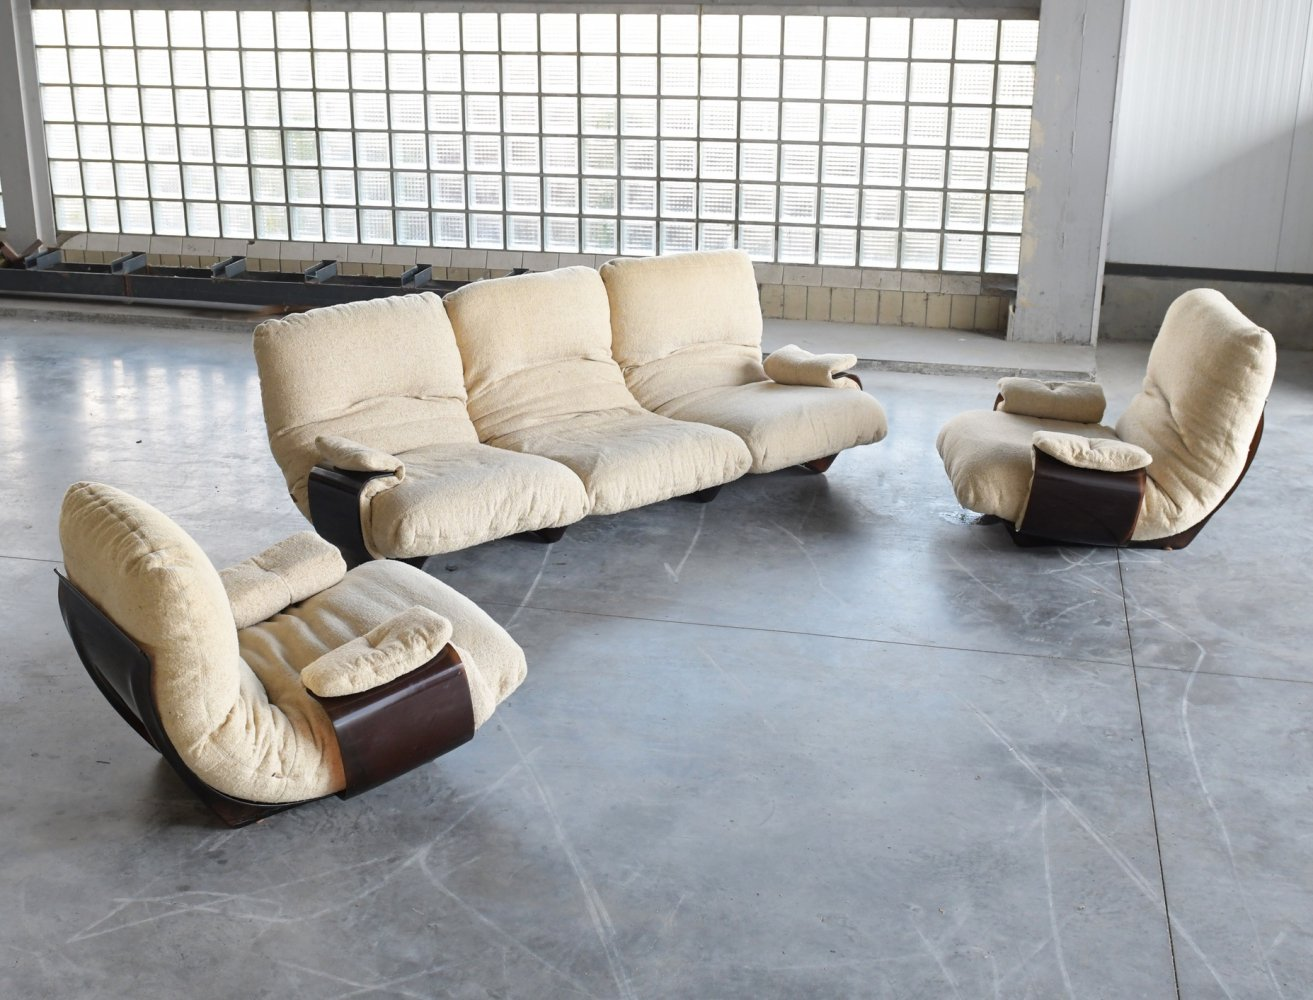 Original boucle fabric Marsala seating group by Michel Ducaroy for Ligne Roset, 1970s